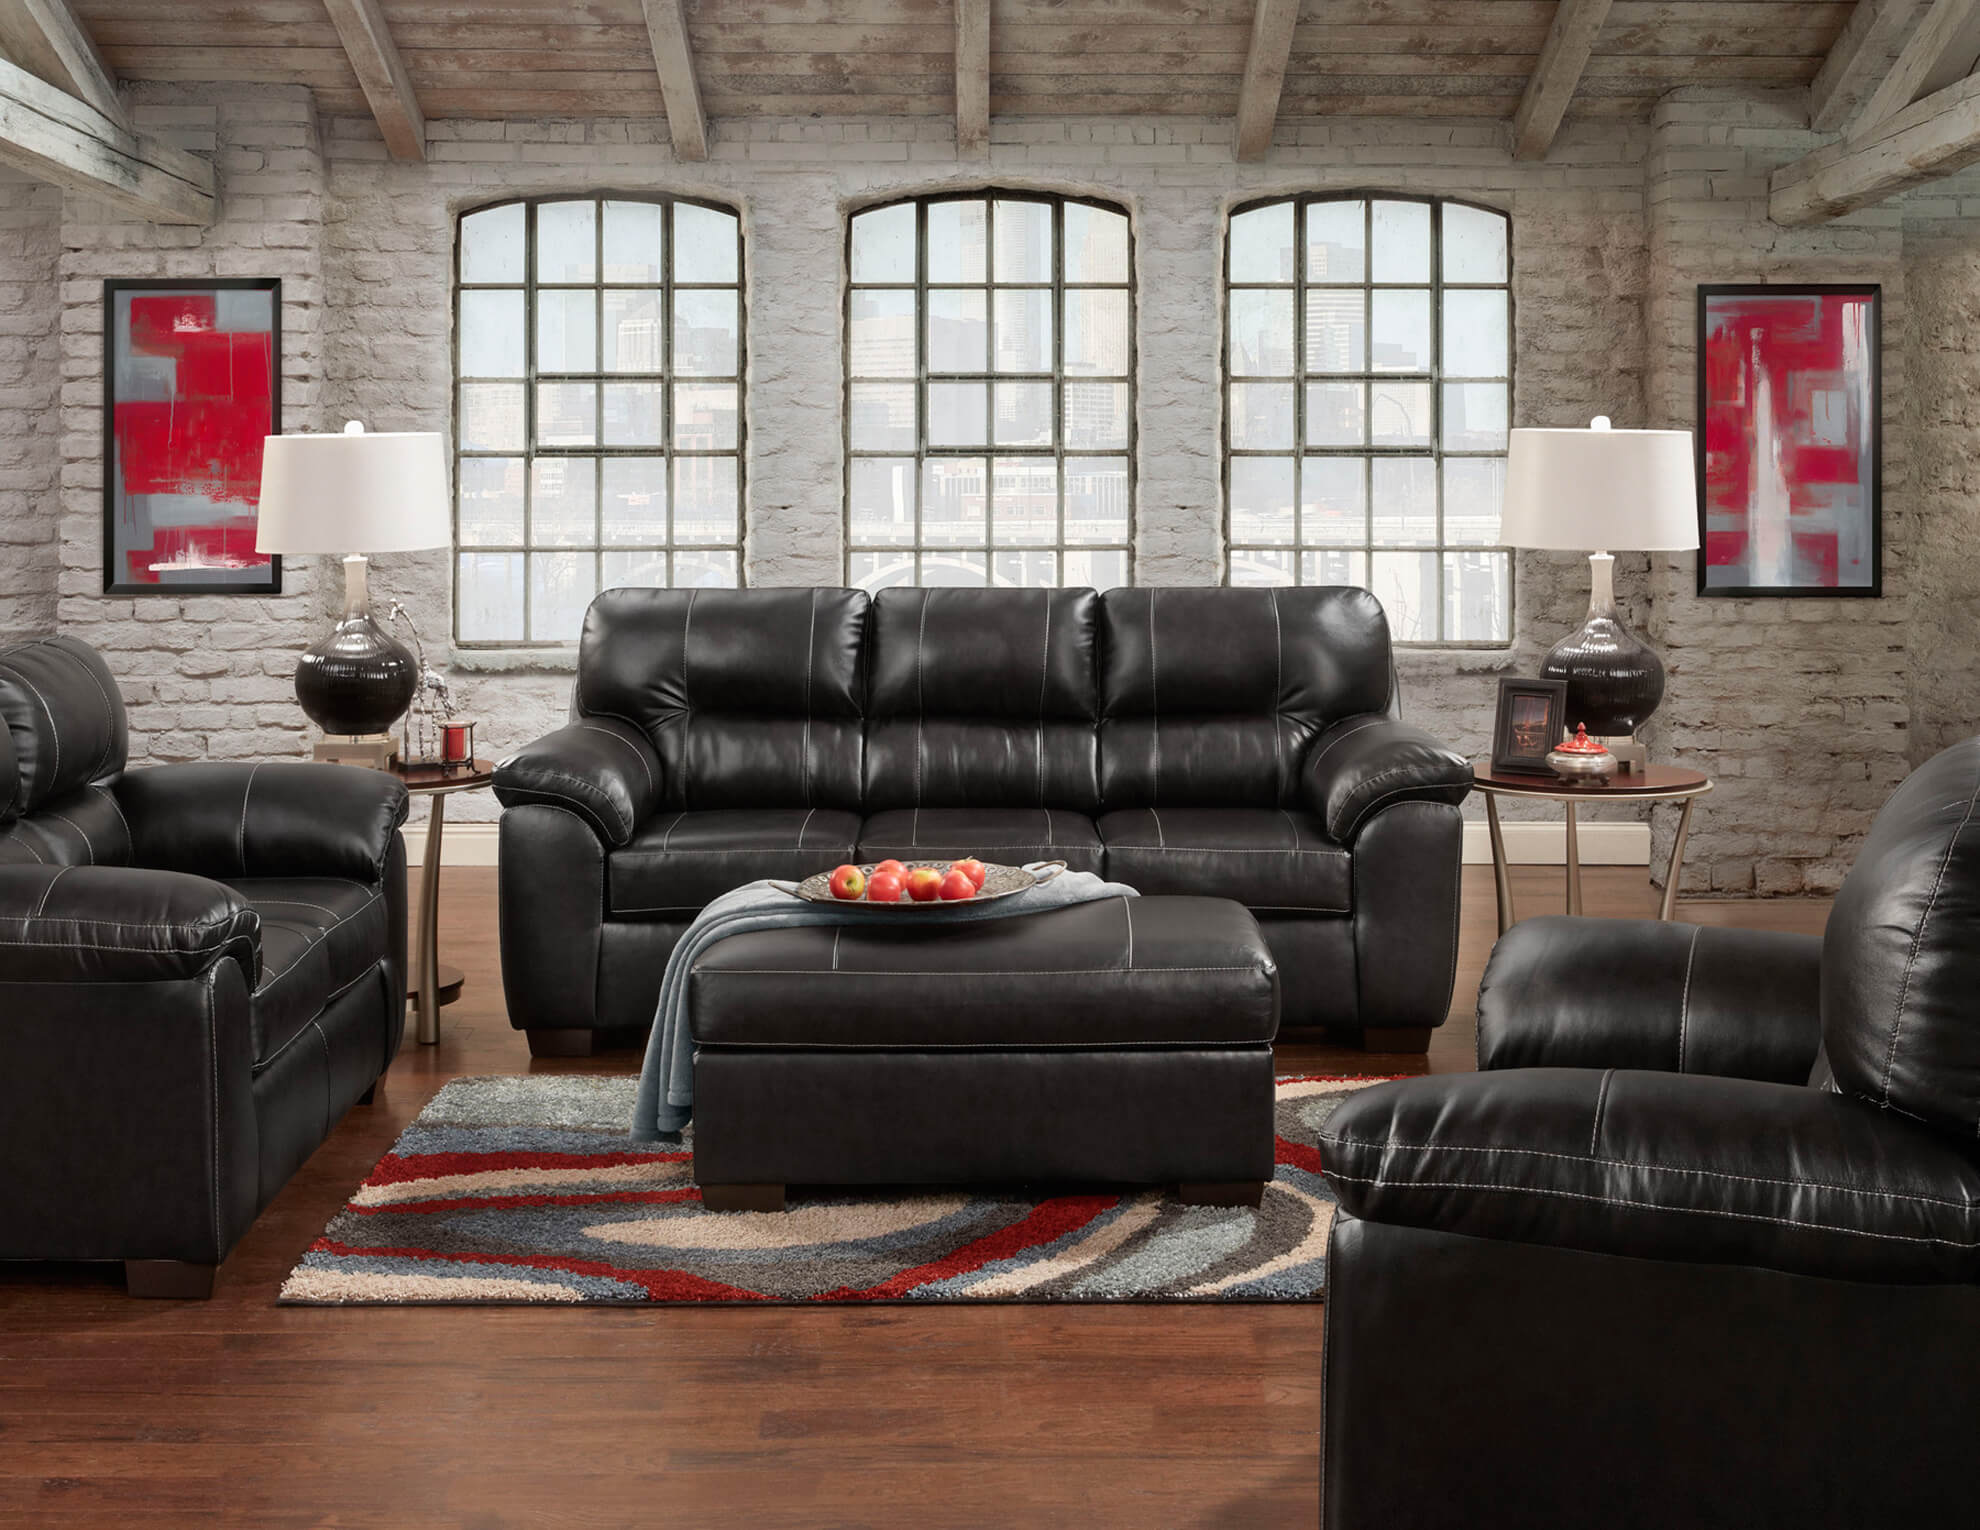 Best Images About Living Room Leather Furniture On Pinterest - Best living room sets